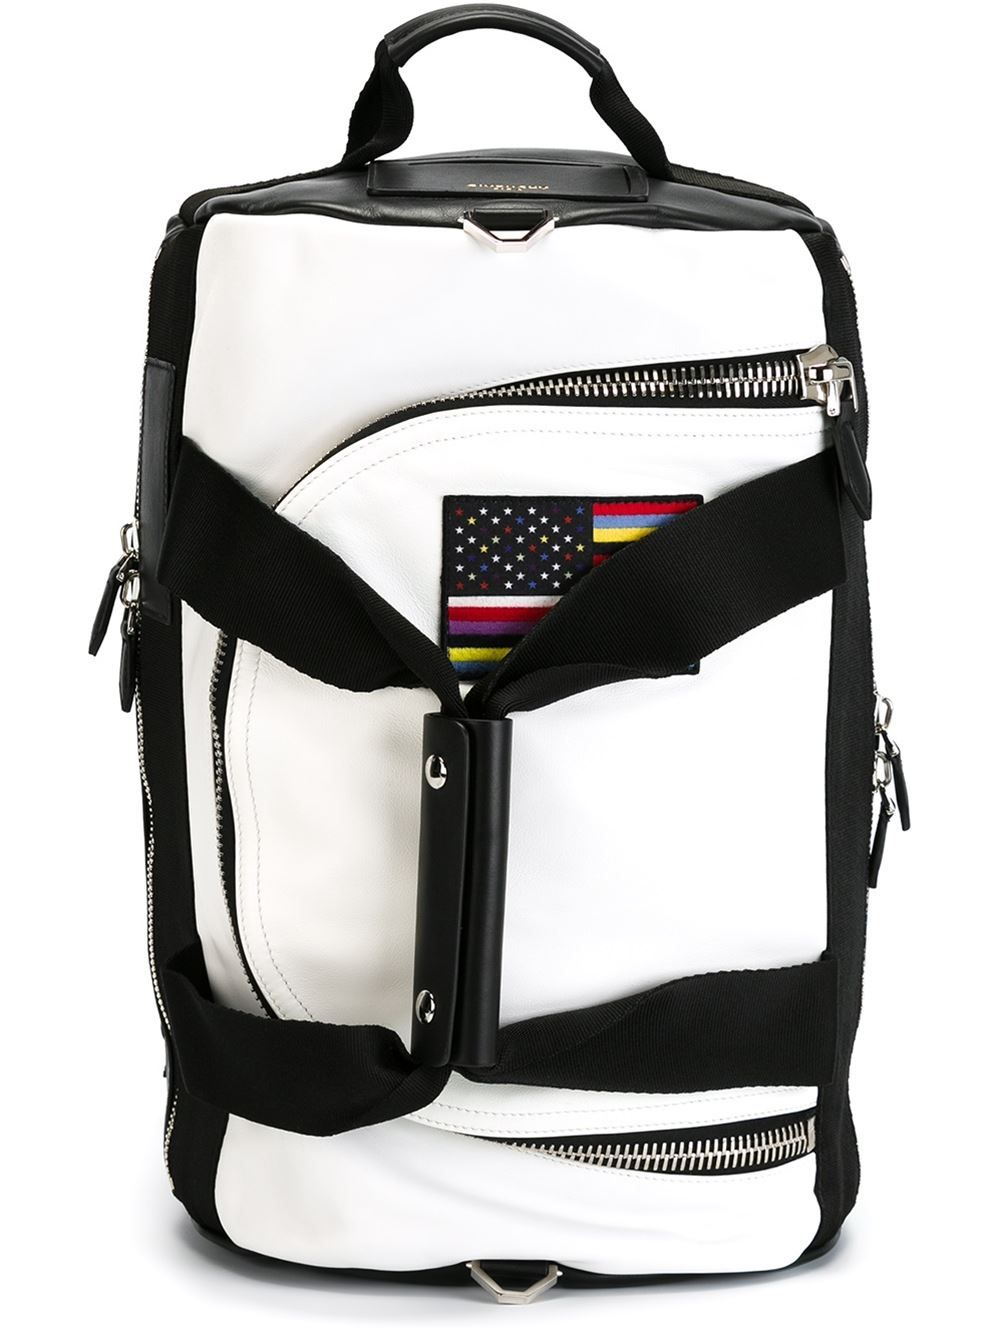 3dd7d97e43a Givenchy Holdall Backpack - Eraldo - Farfetch.com | Fashion ...